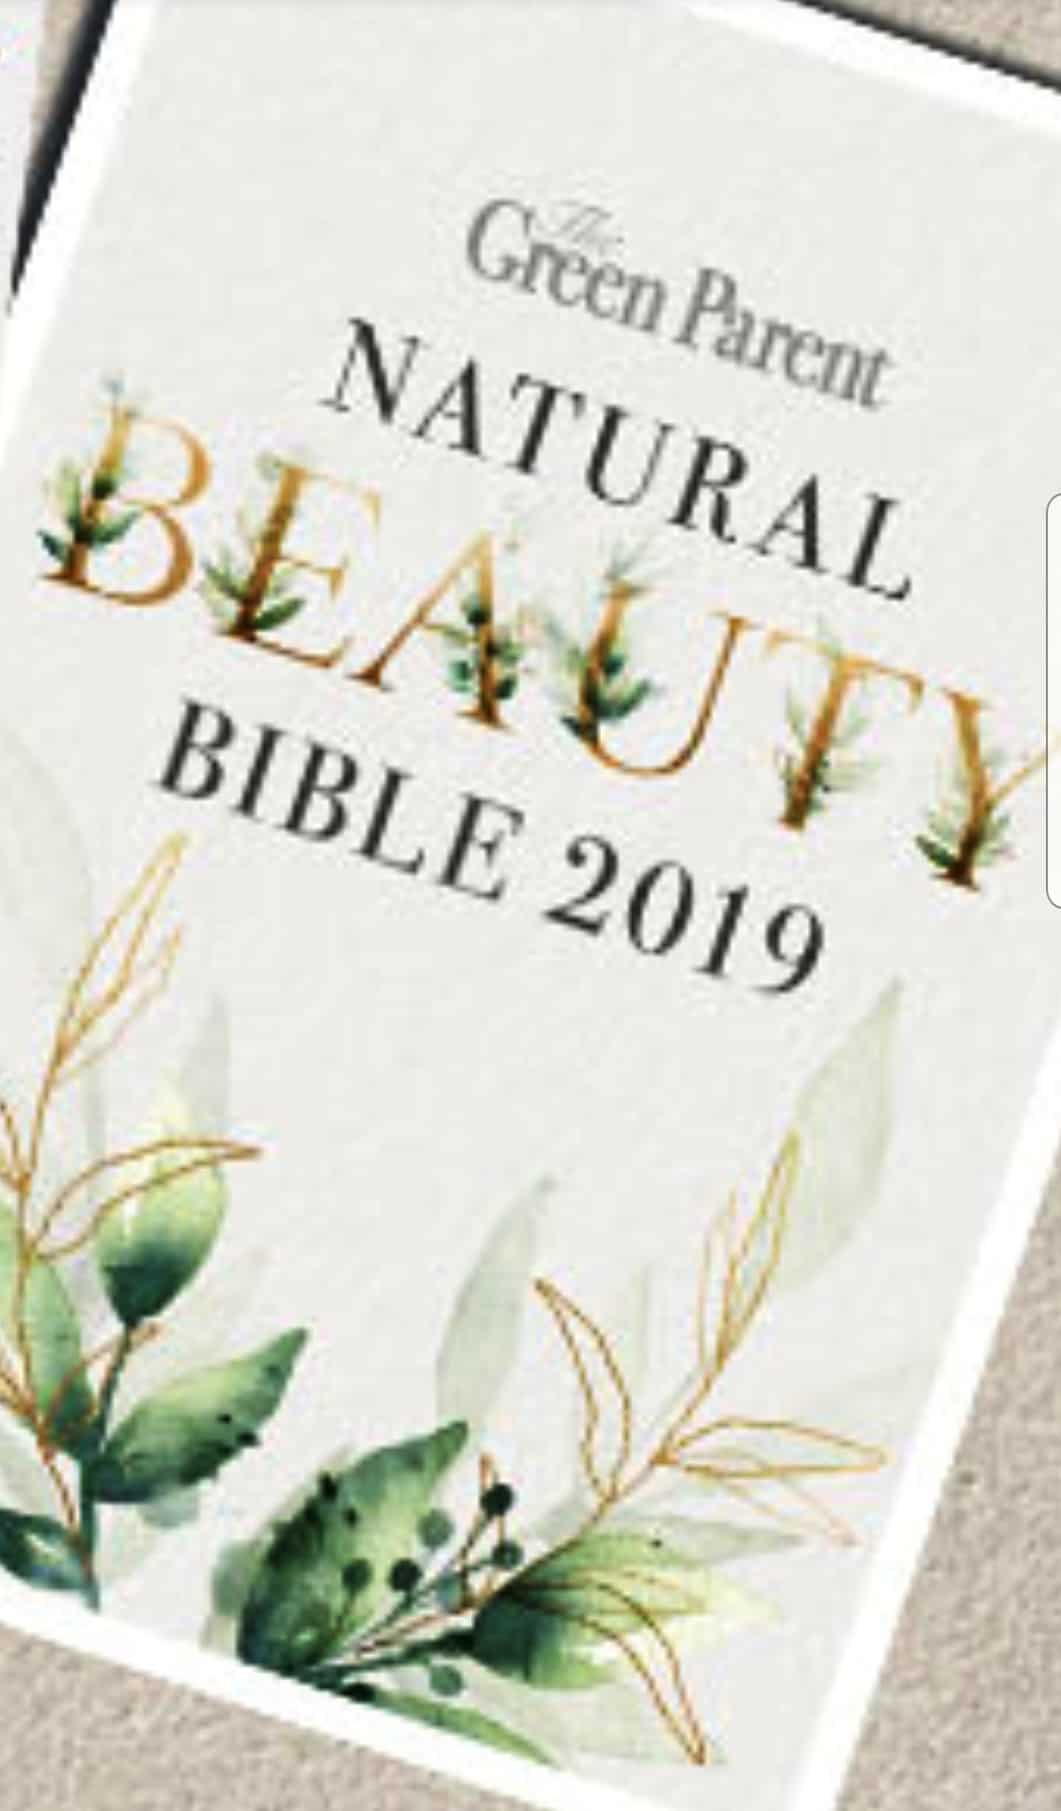 Green Parent Bible 2019